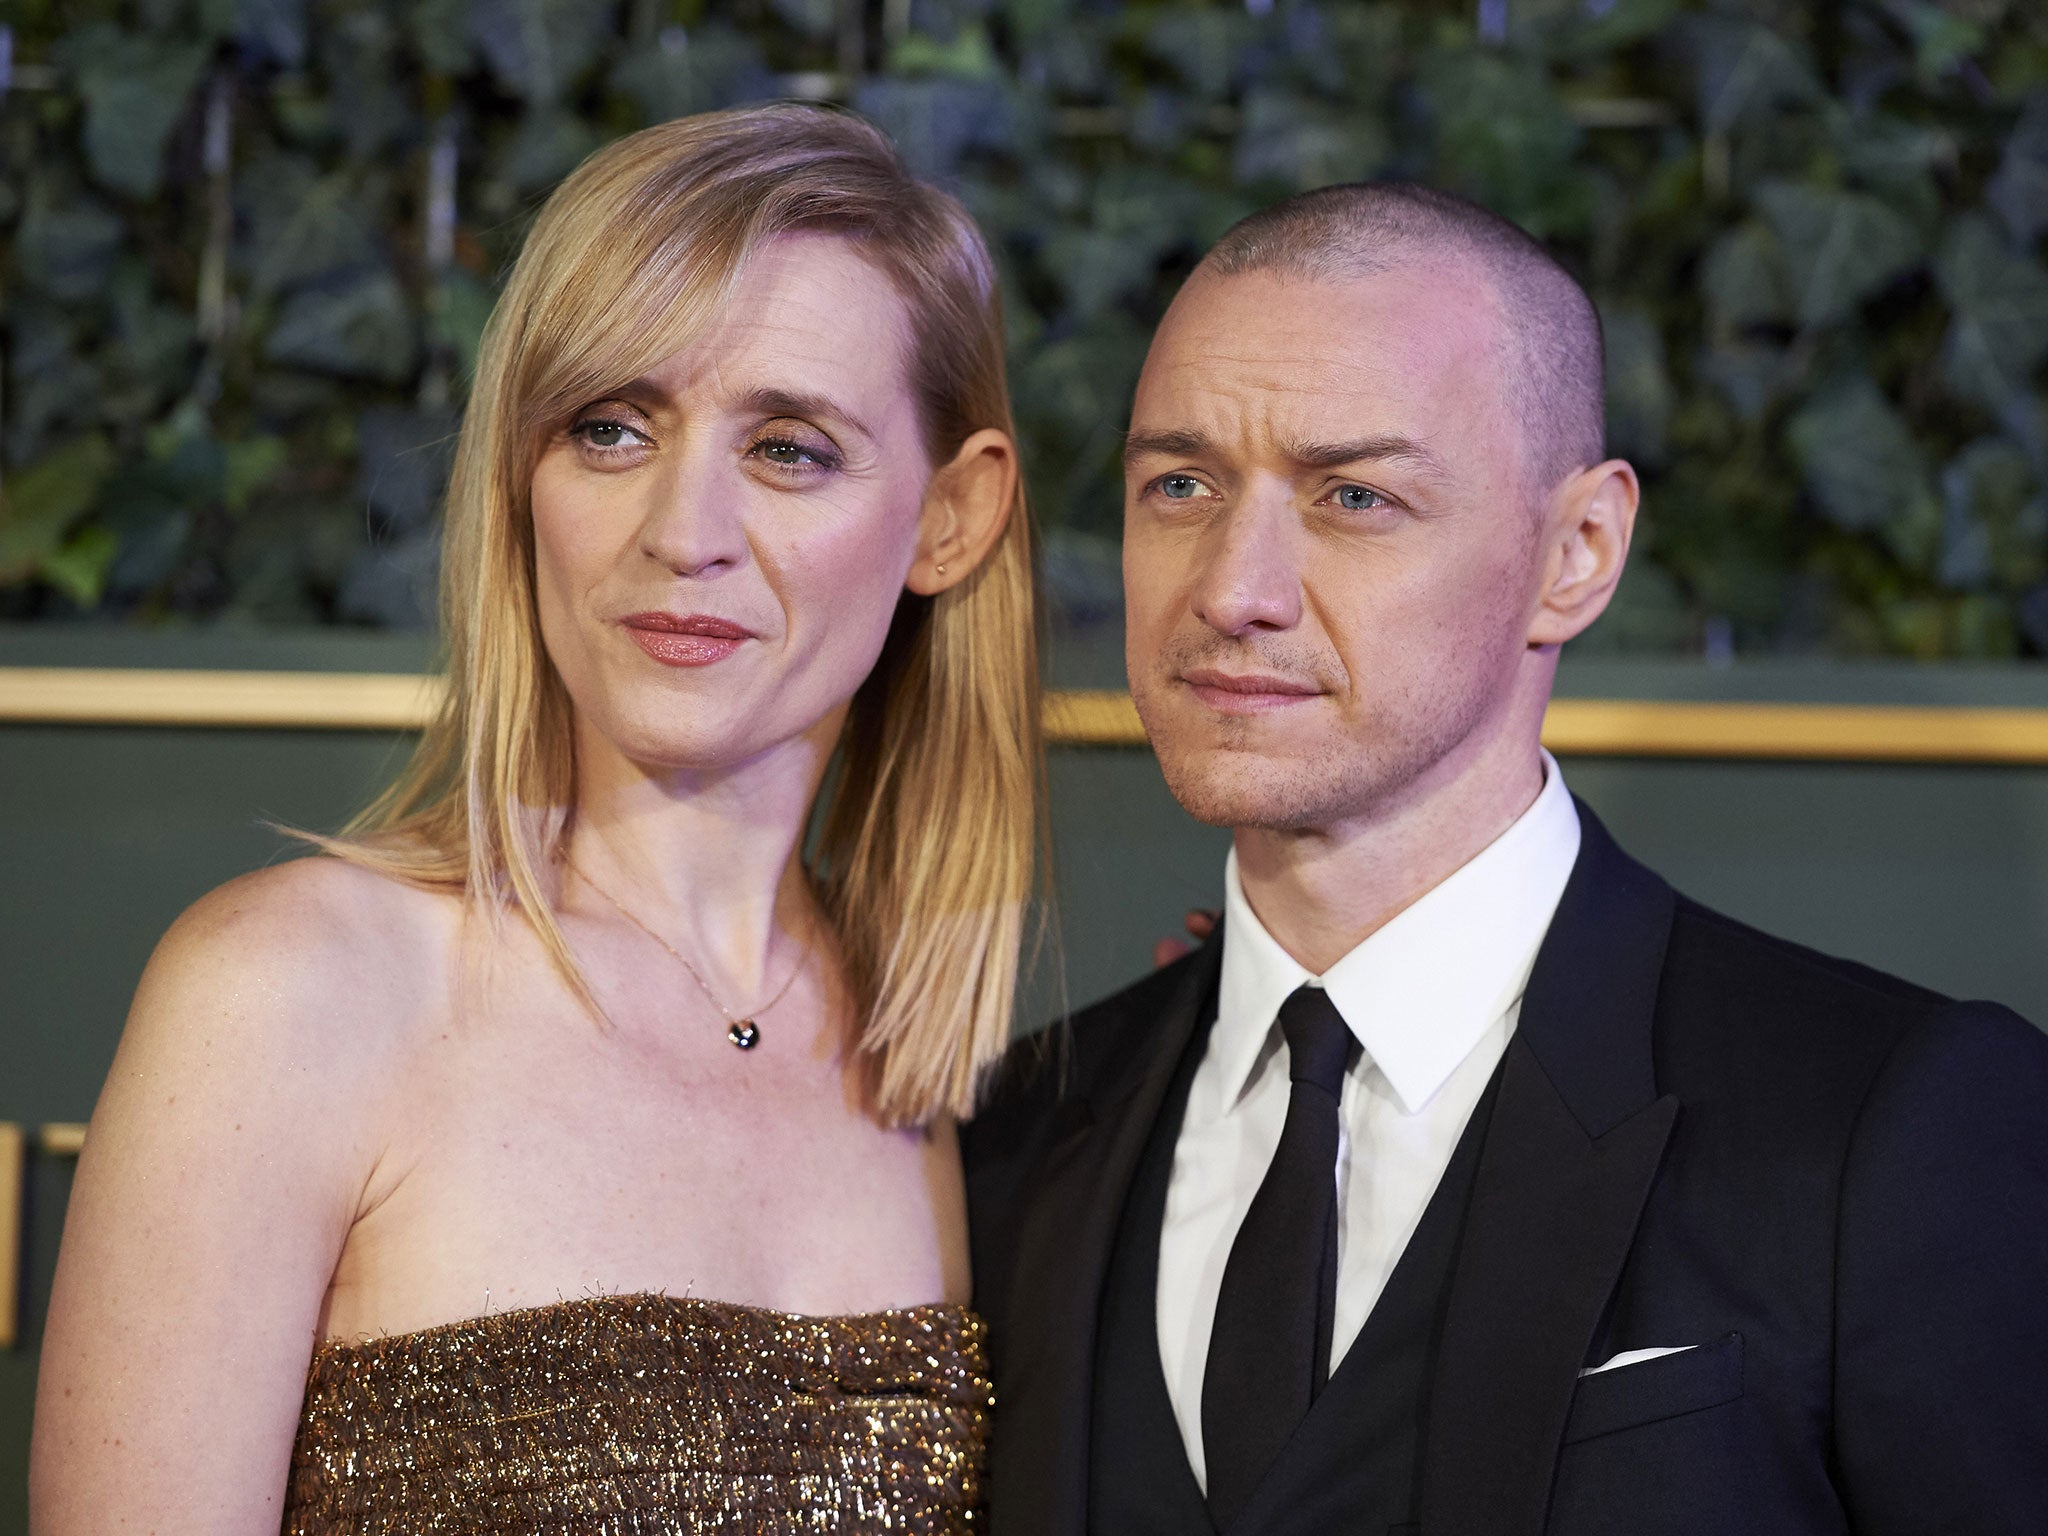 James McAvoy and Anne-Marie Duff announce they are to divorce   People   News   The Independent